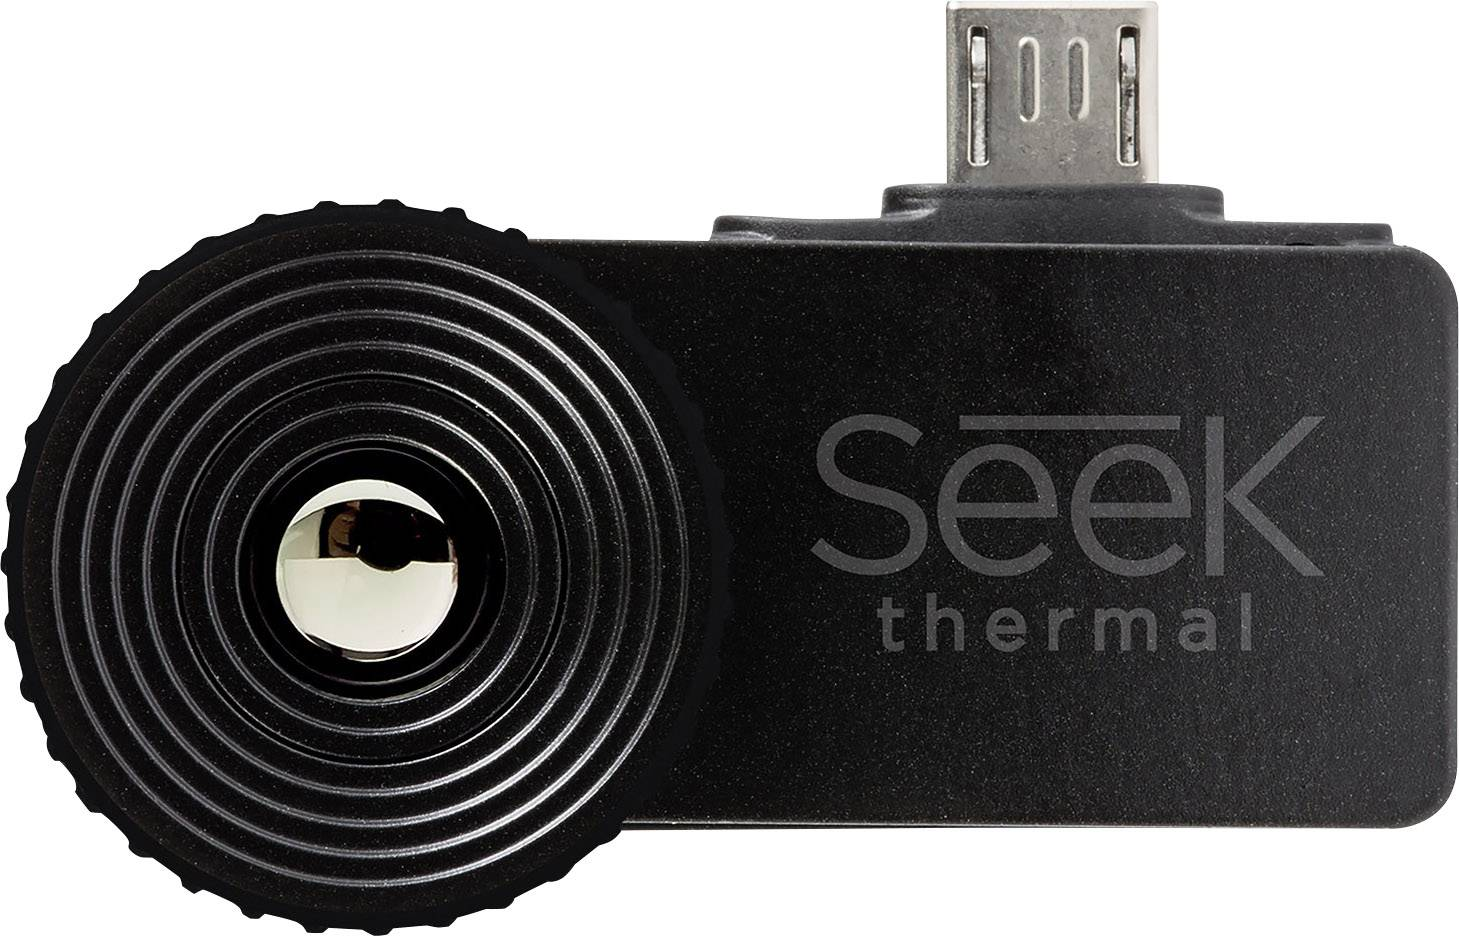 Termokamera Seek Thermal Compact XR SK1002AN pro Android, 206 x 156 pix